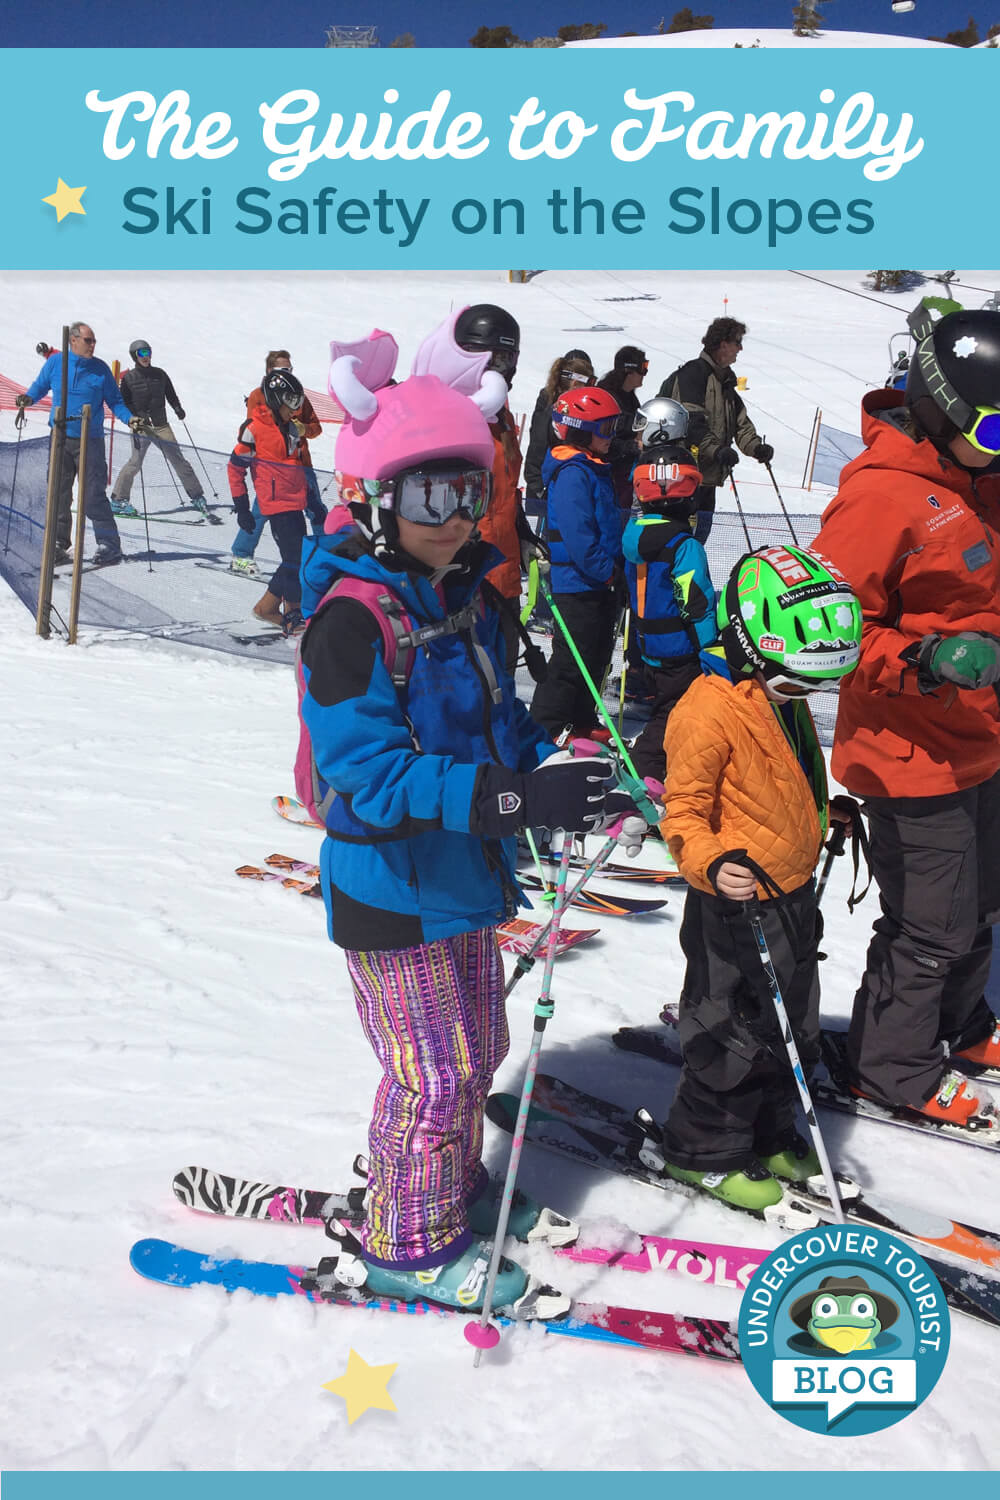 Guide to Family Ski Safety on the Slopes